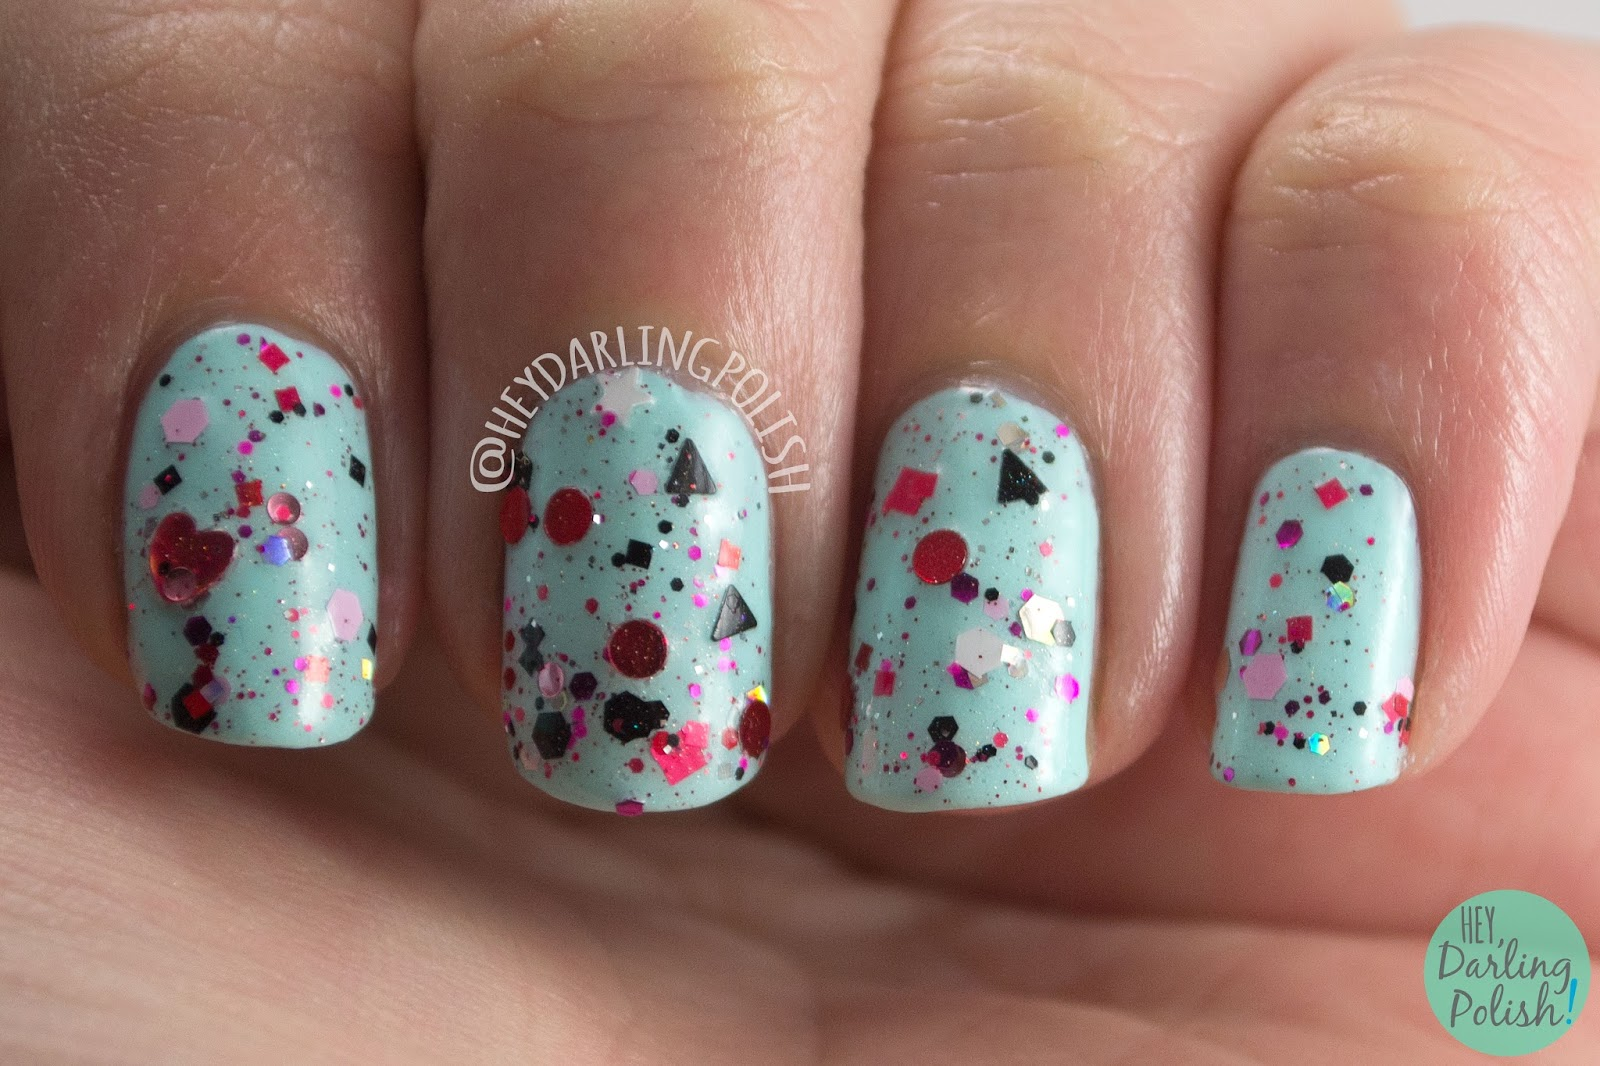 glitter, valentines, valentines day, shot through the heart, nails, nail polish, indie polish, indie nail polish, hey darling polish, ice polish, swatches